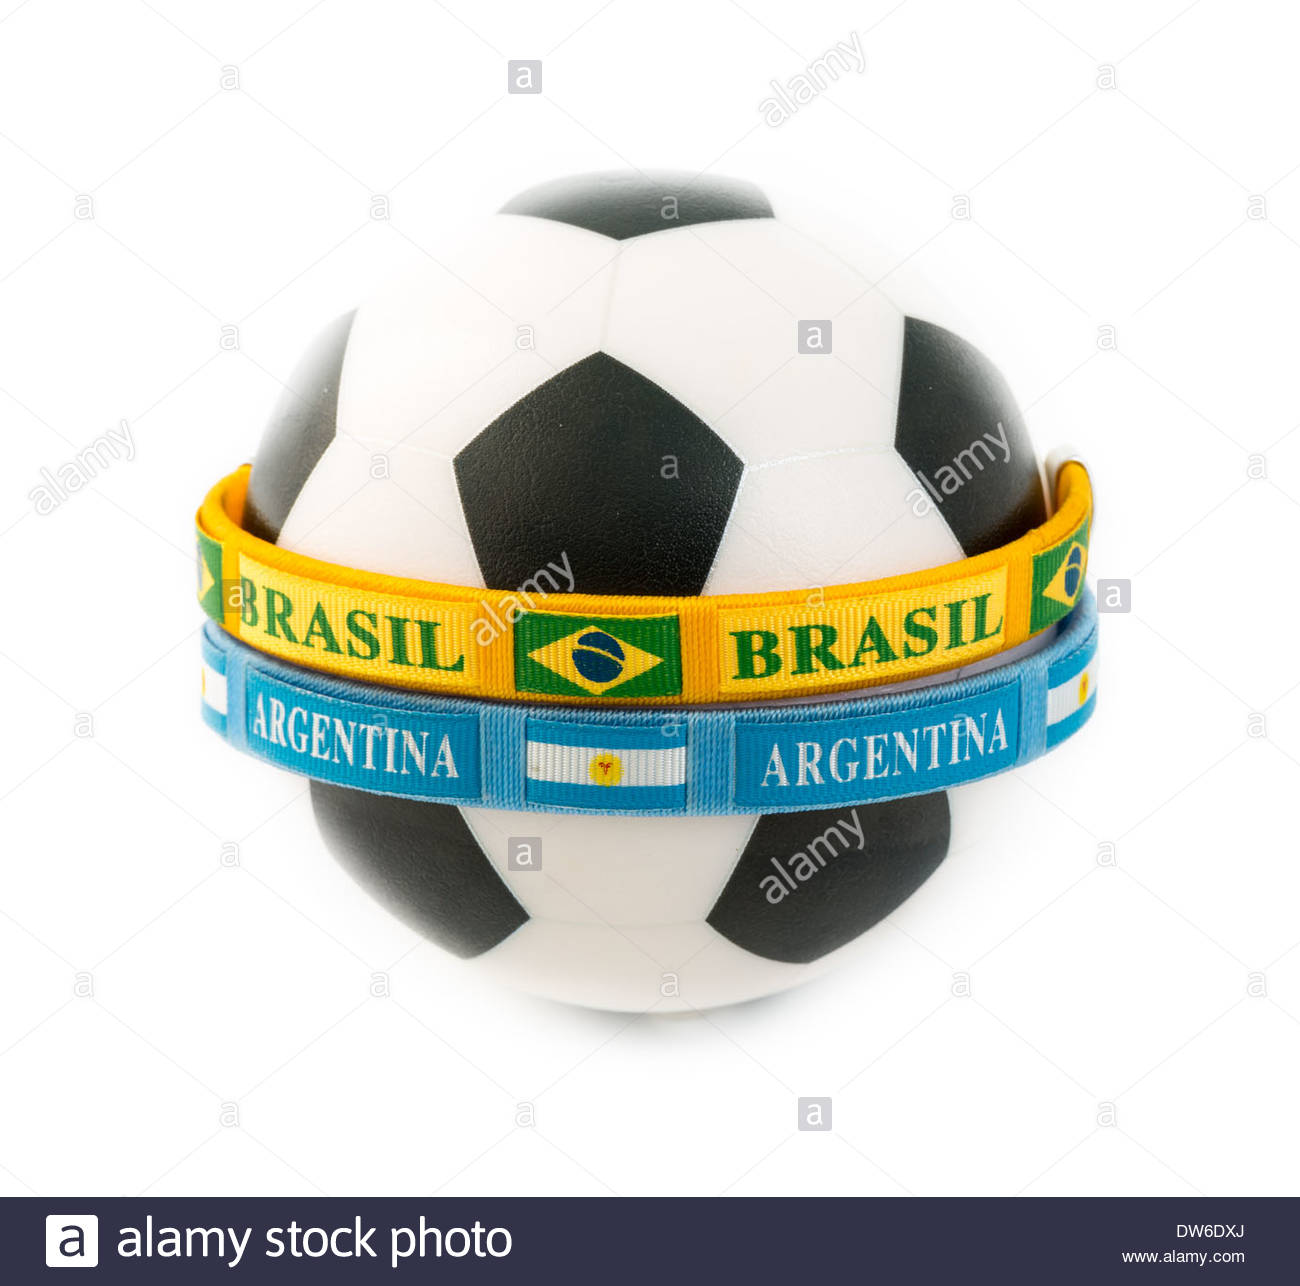 Concept of the rivalry between Brasil and Argentina in the international arena regarding the sport of soccer - Stock Image